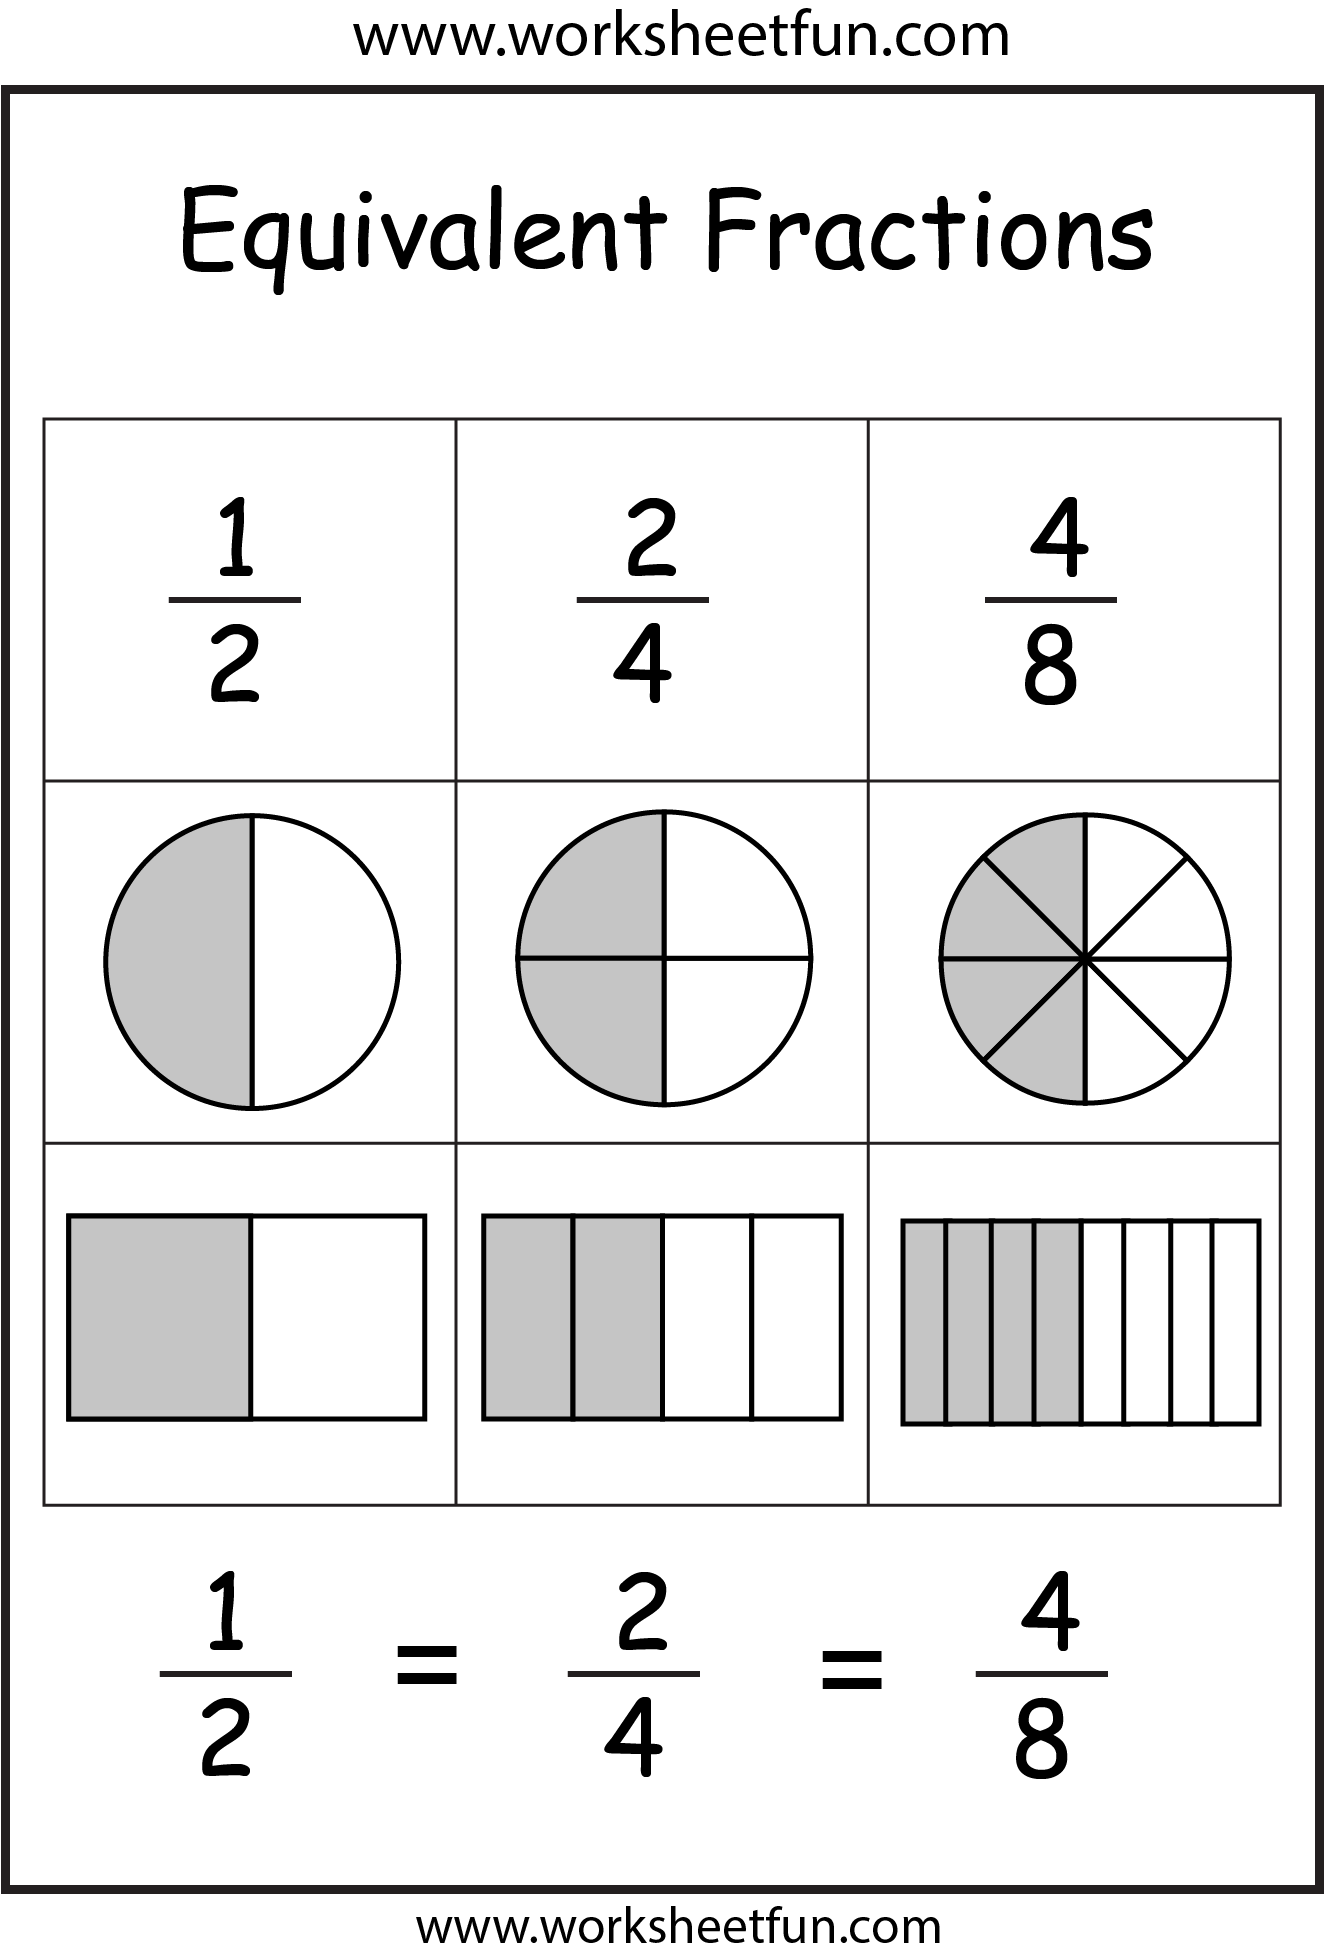 equivalentfraction1by2